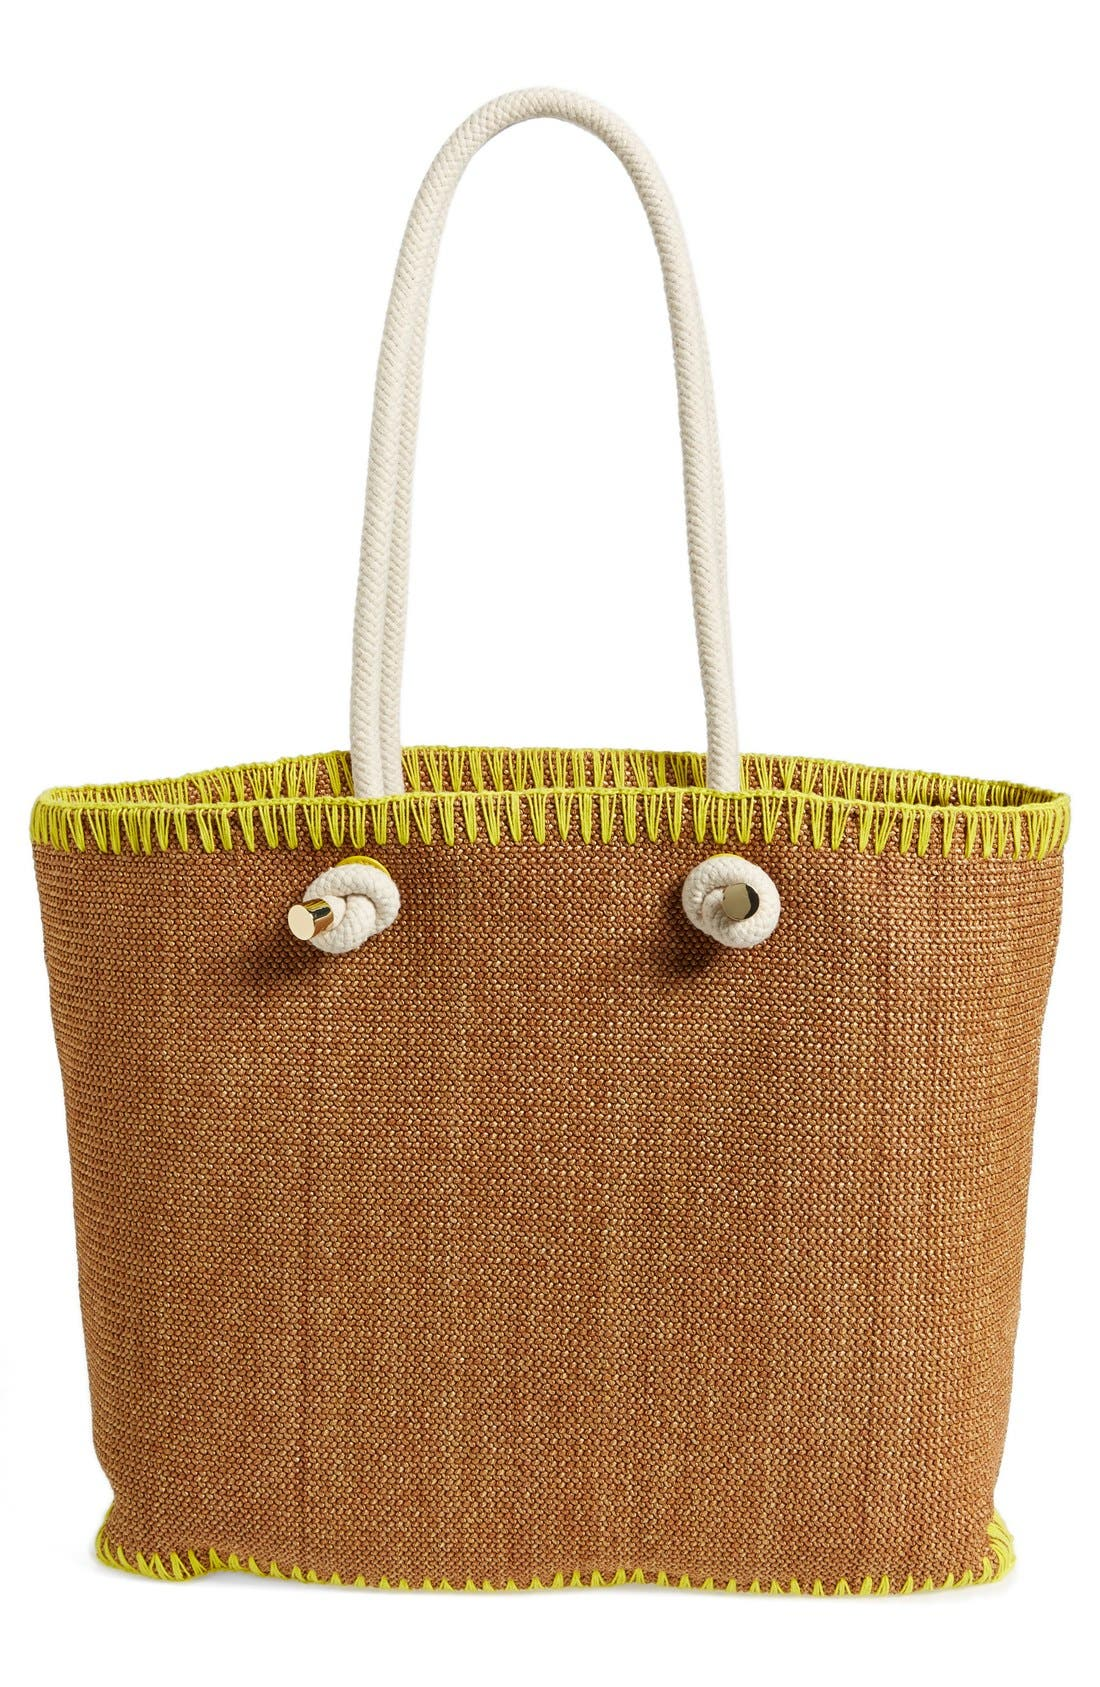 TORY BURCH, 'Pineapple' Woven Tote, Alternate thumbnail 3, color, 200